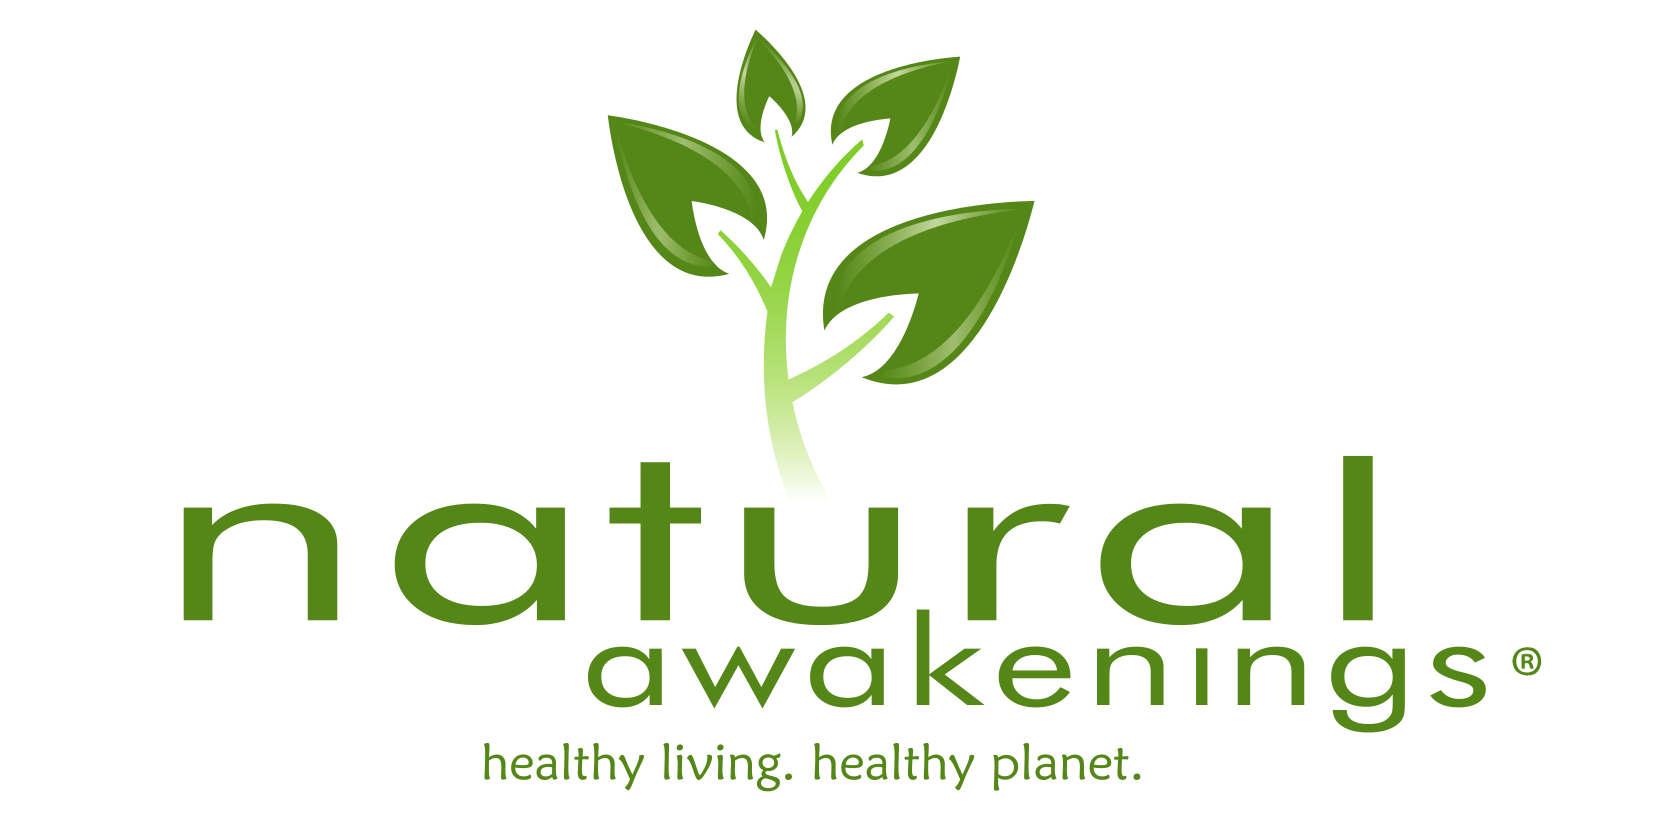 Natural-Awakenings-Logo.jpg